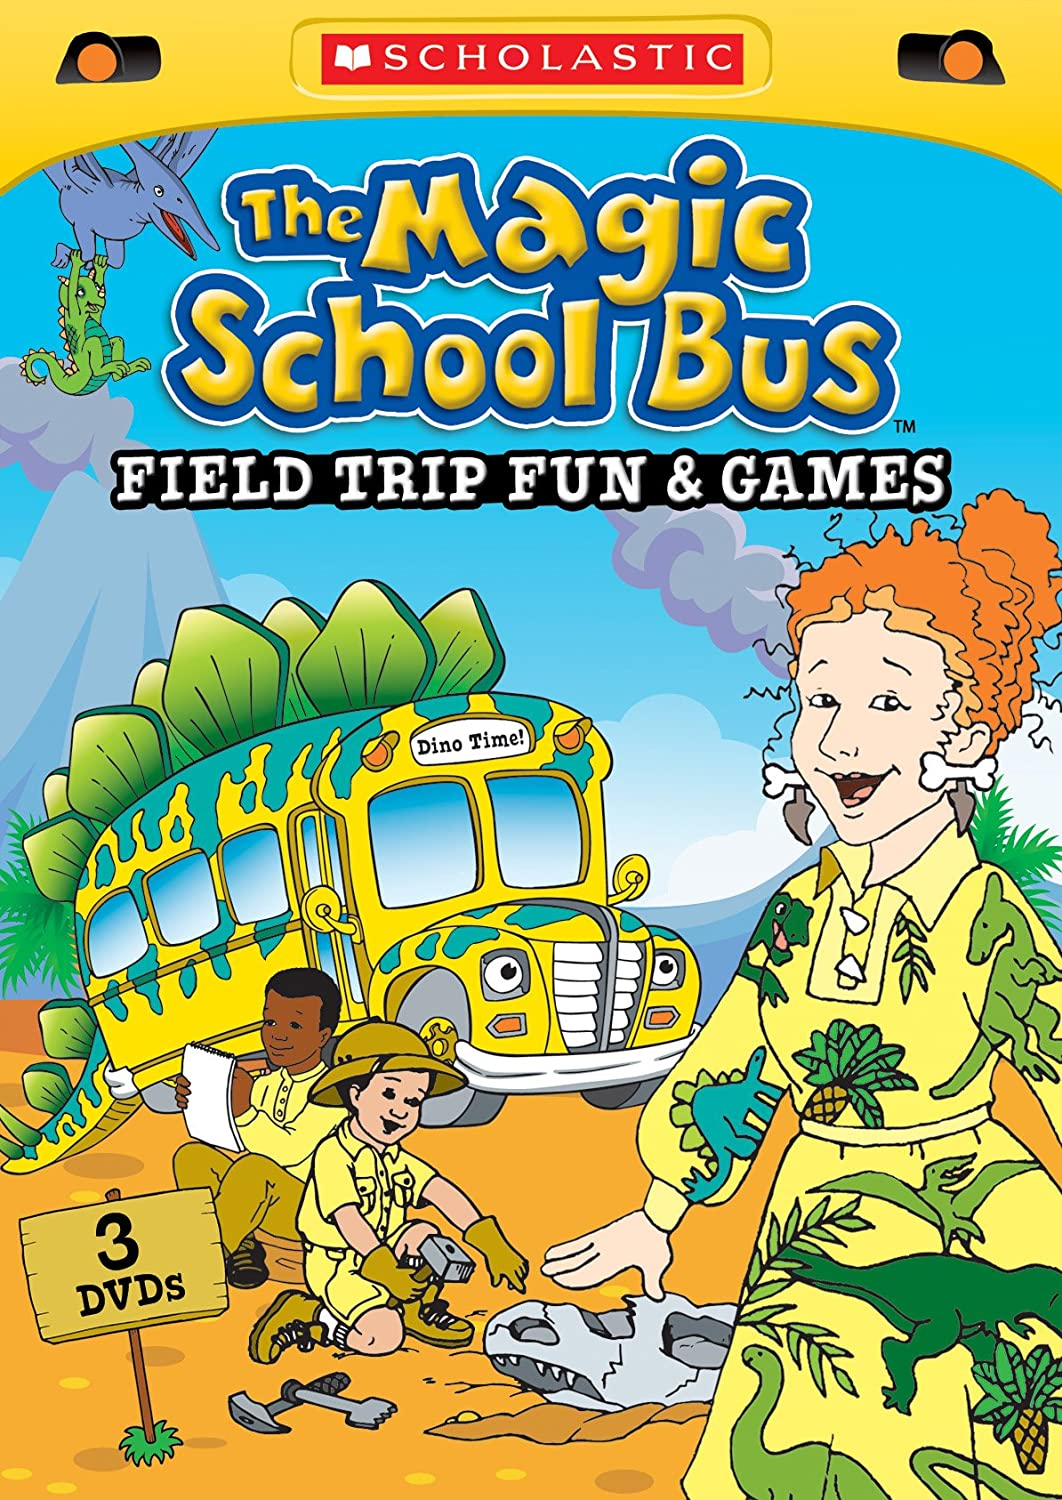 Amazon Com The Magic School Bus Field Trip Fun Games Various Scholastic Movies Tv